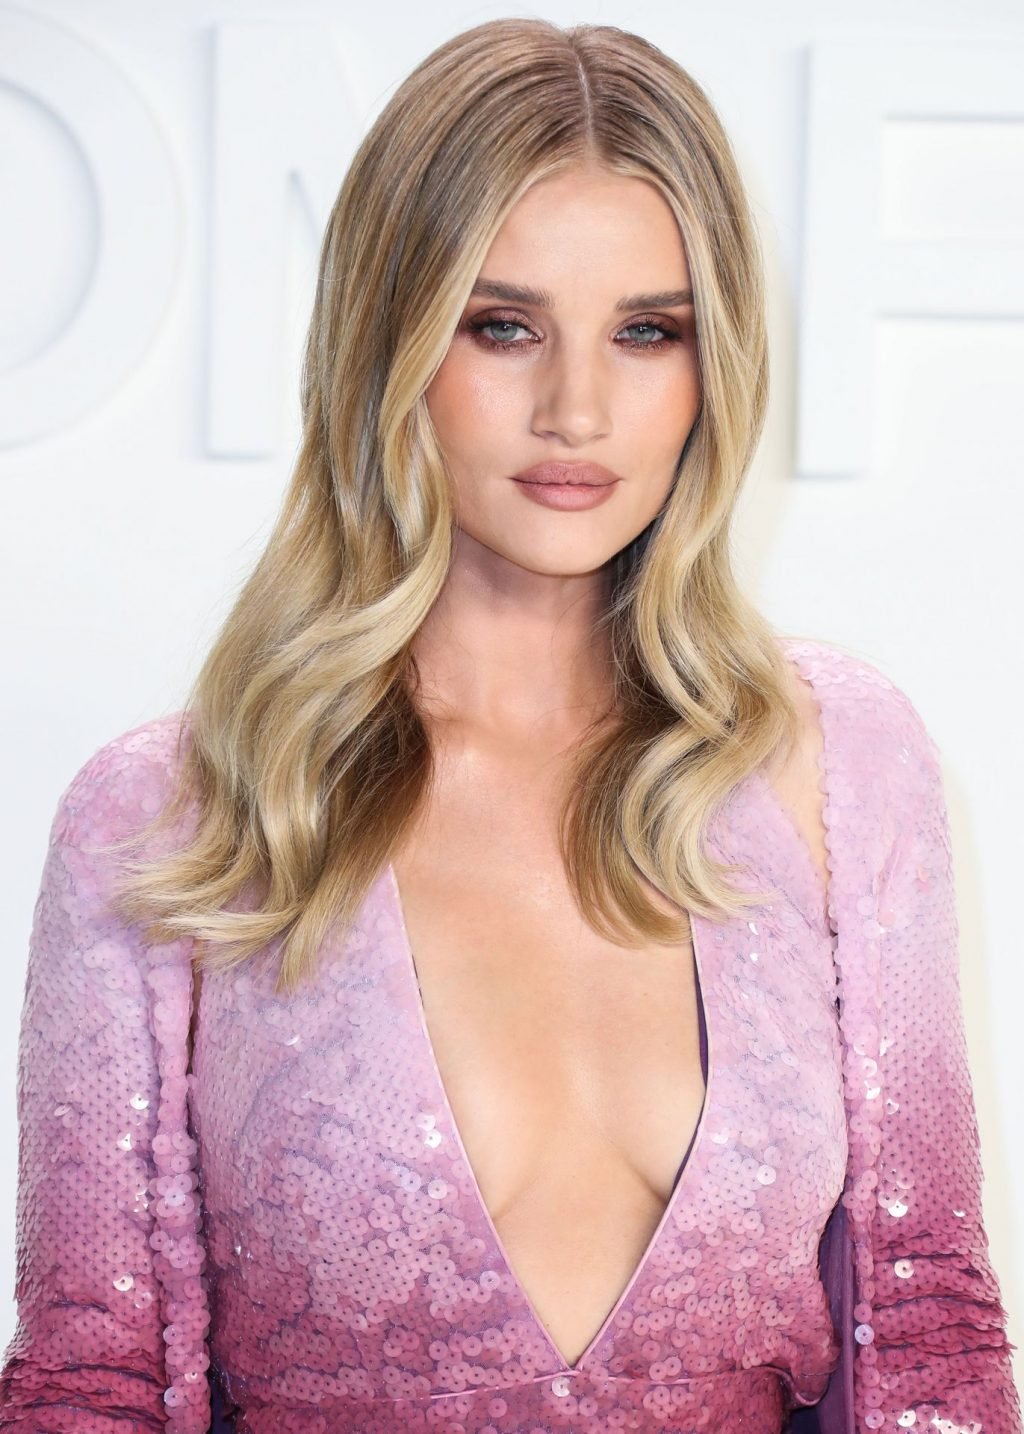 Rosie Huntington Whiteley Sexy The Fappening Blog 71 1024x1434 - Rosie Huntington-Whiteley Shows Her Cleavage at the Tom Ford Fashion Show (115 Photos)